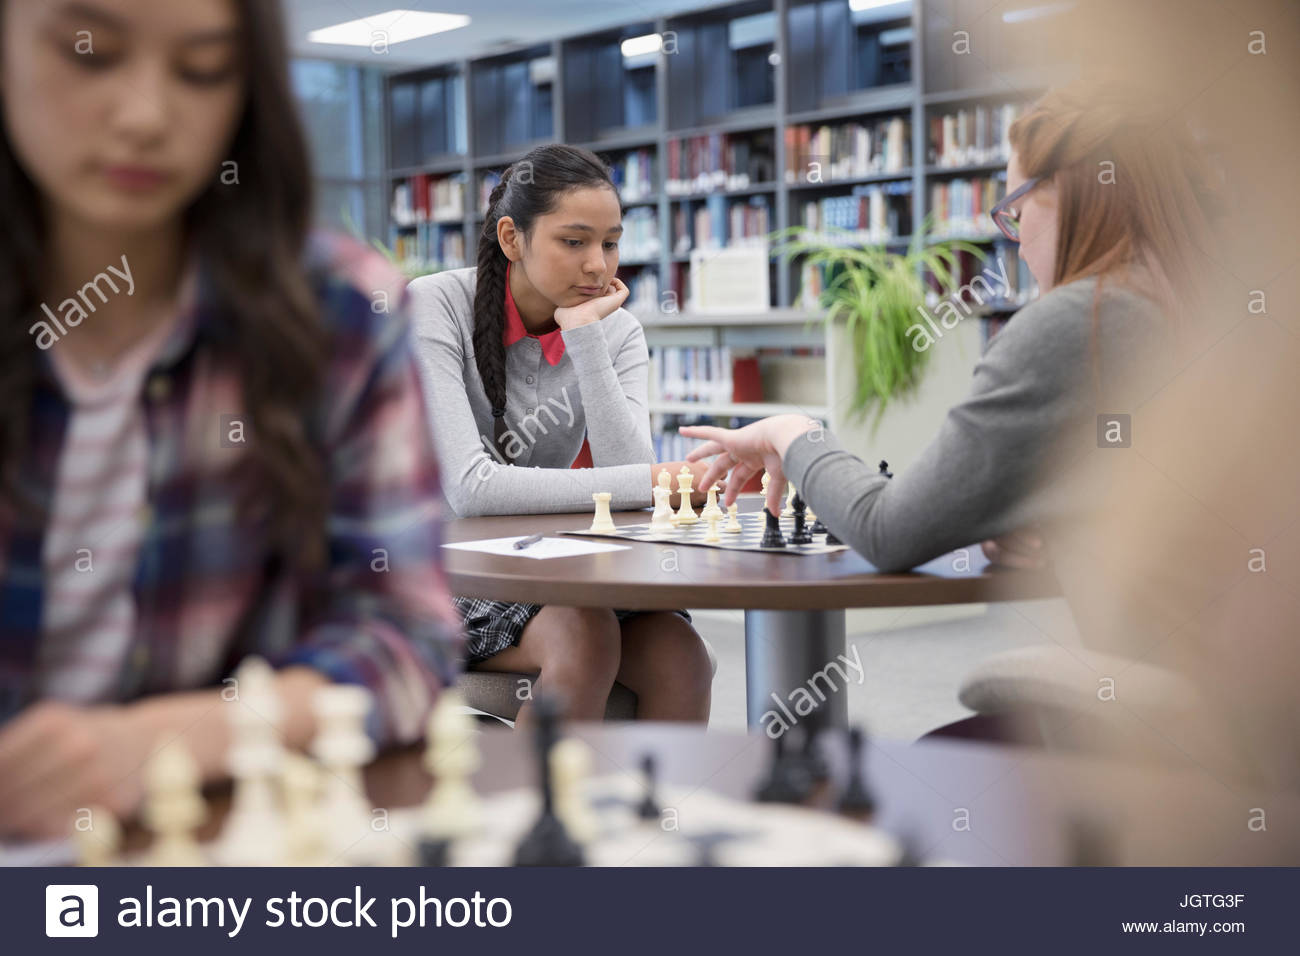 Focused middle school girl student playing chess in chess club library - Stock Image